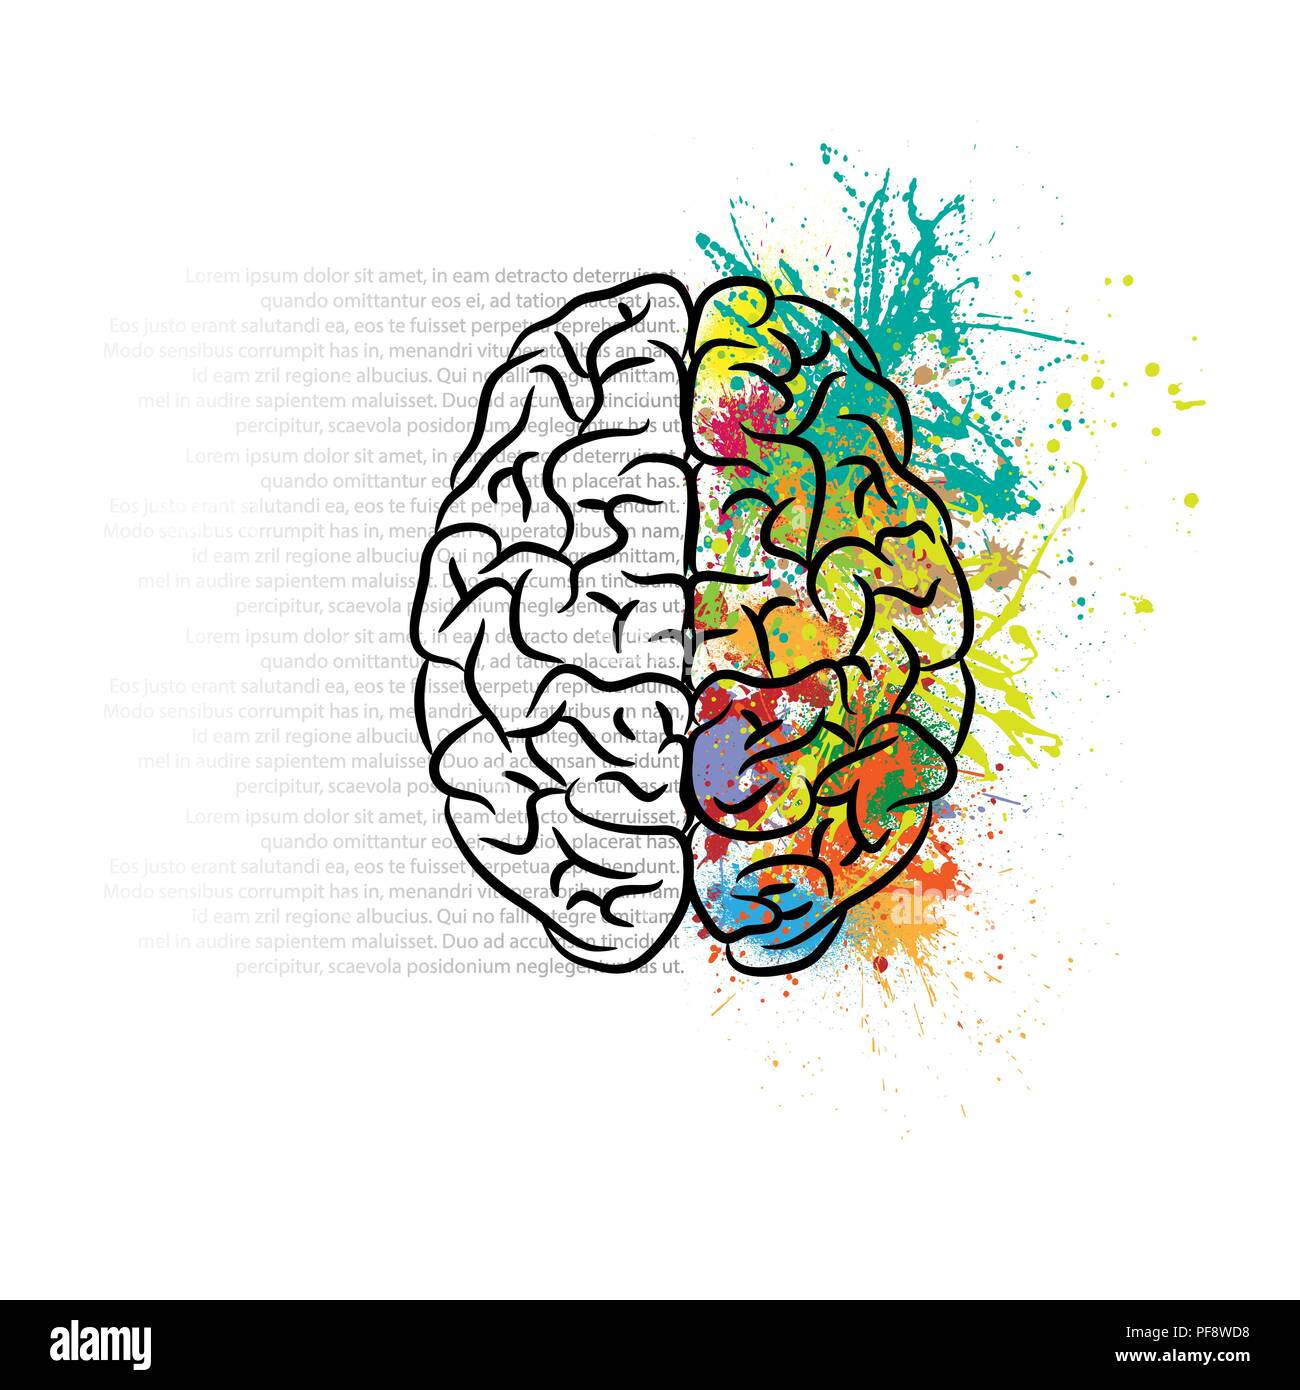 Human brain silhouette with color ink splashes and gray text - Stock Image